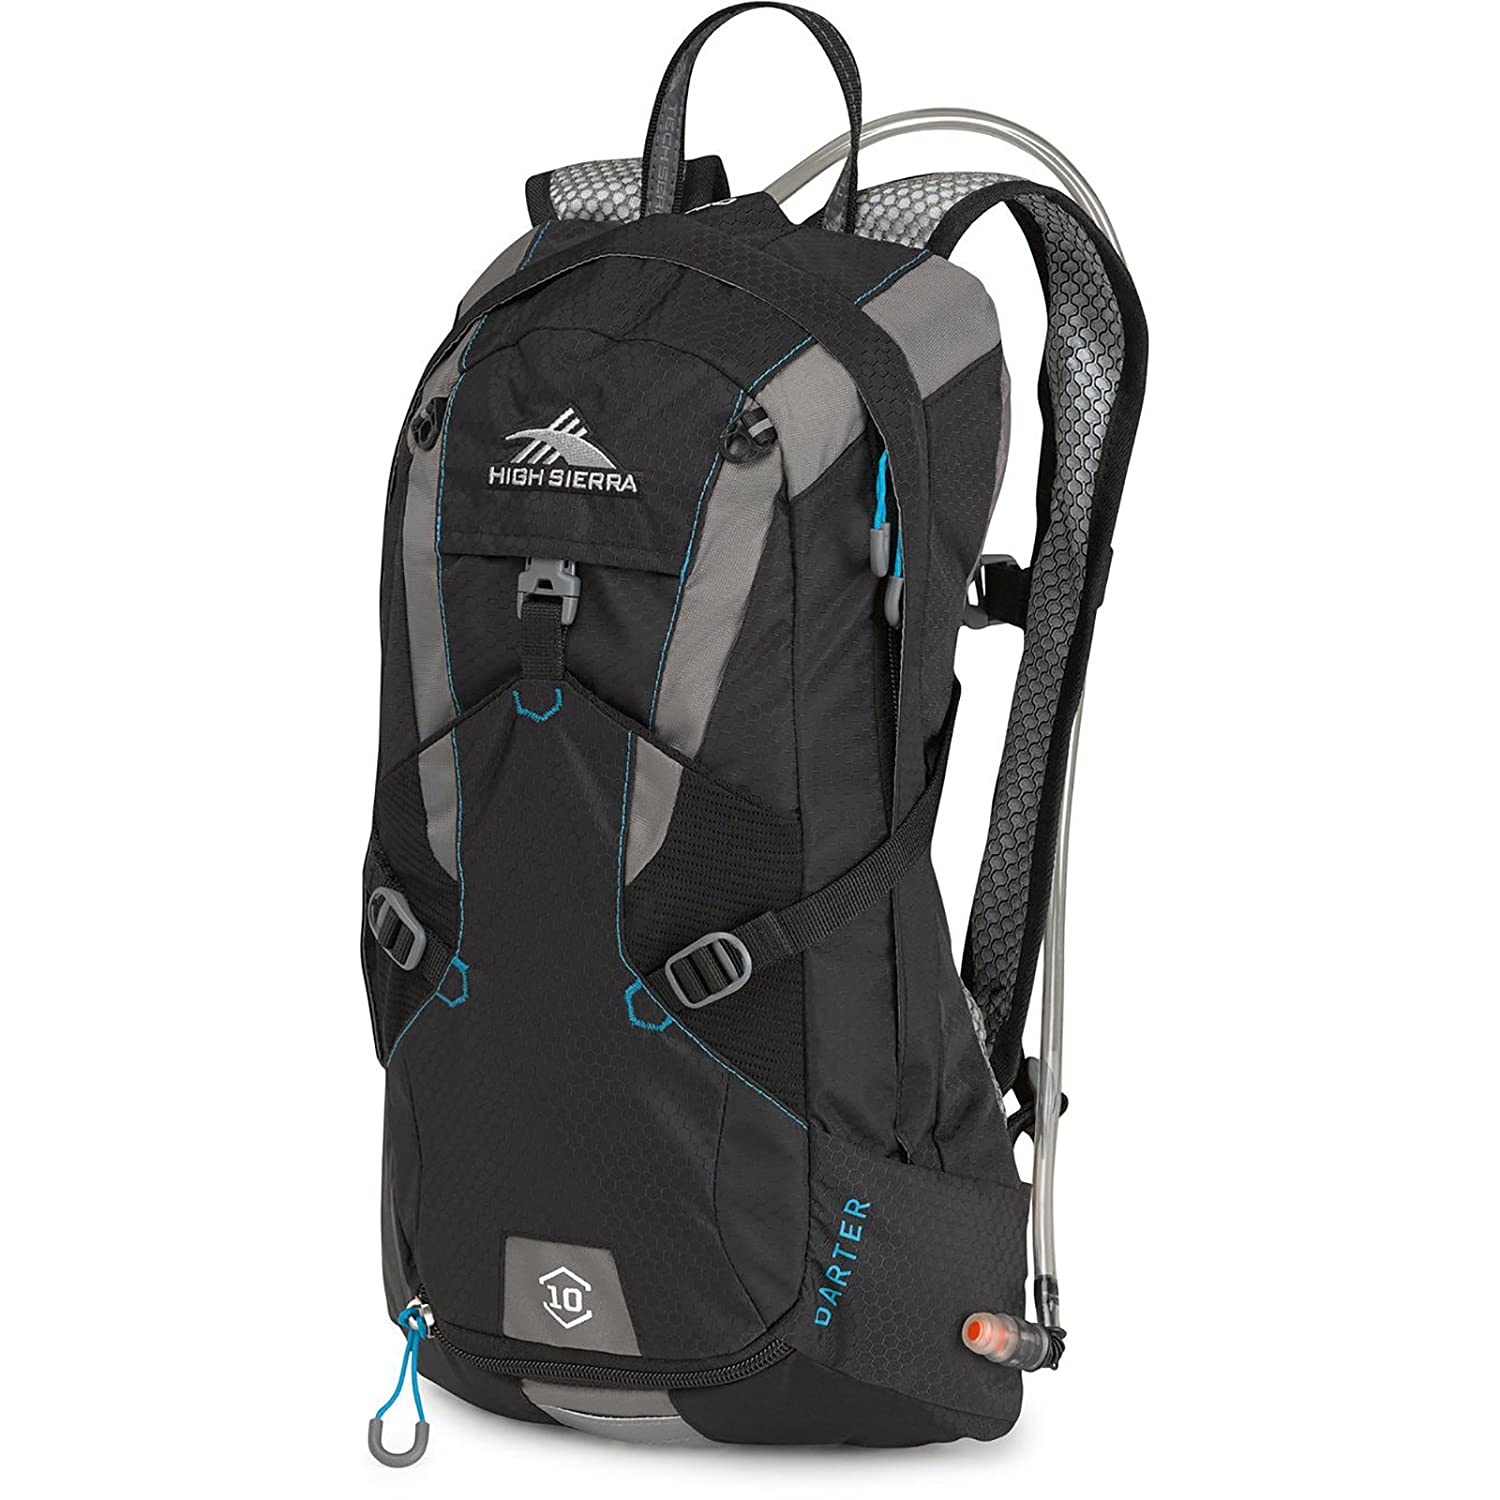 High Sierra Darter 10L Hydration Pack